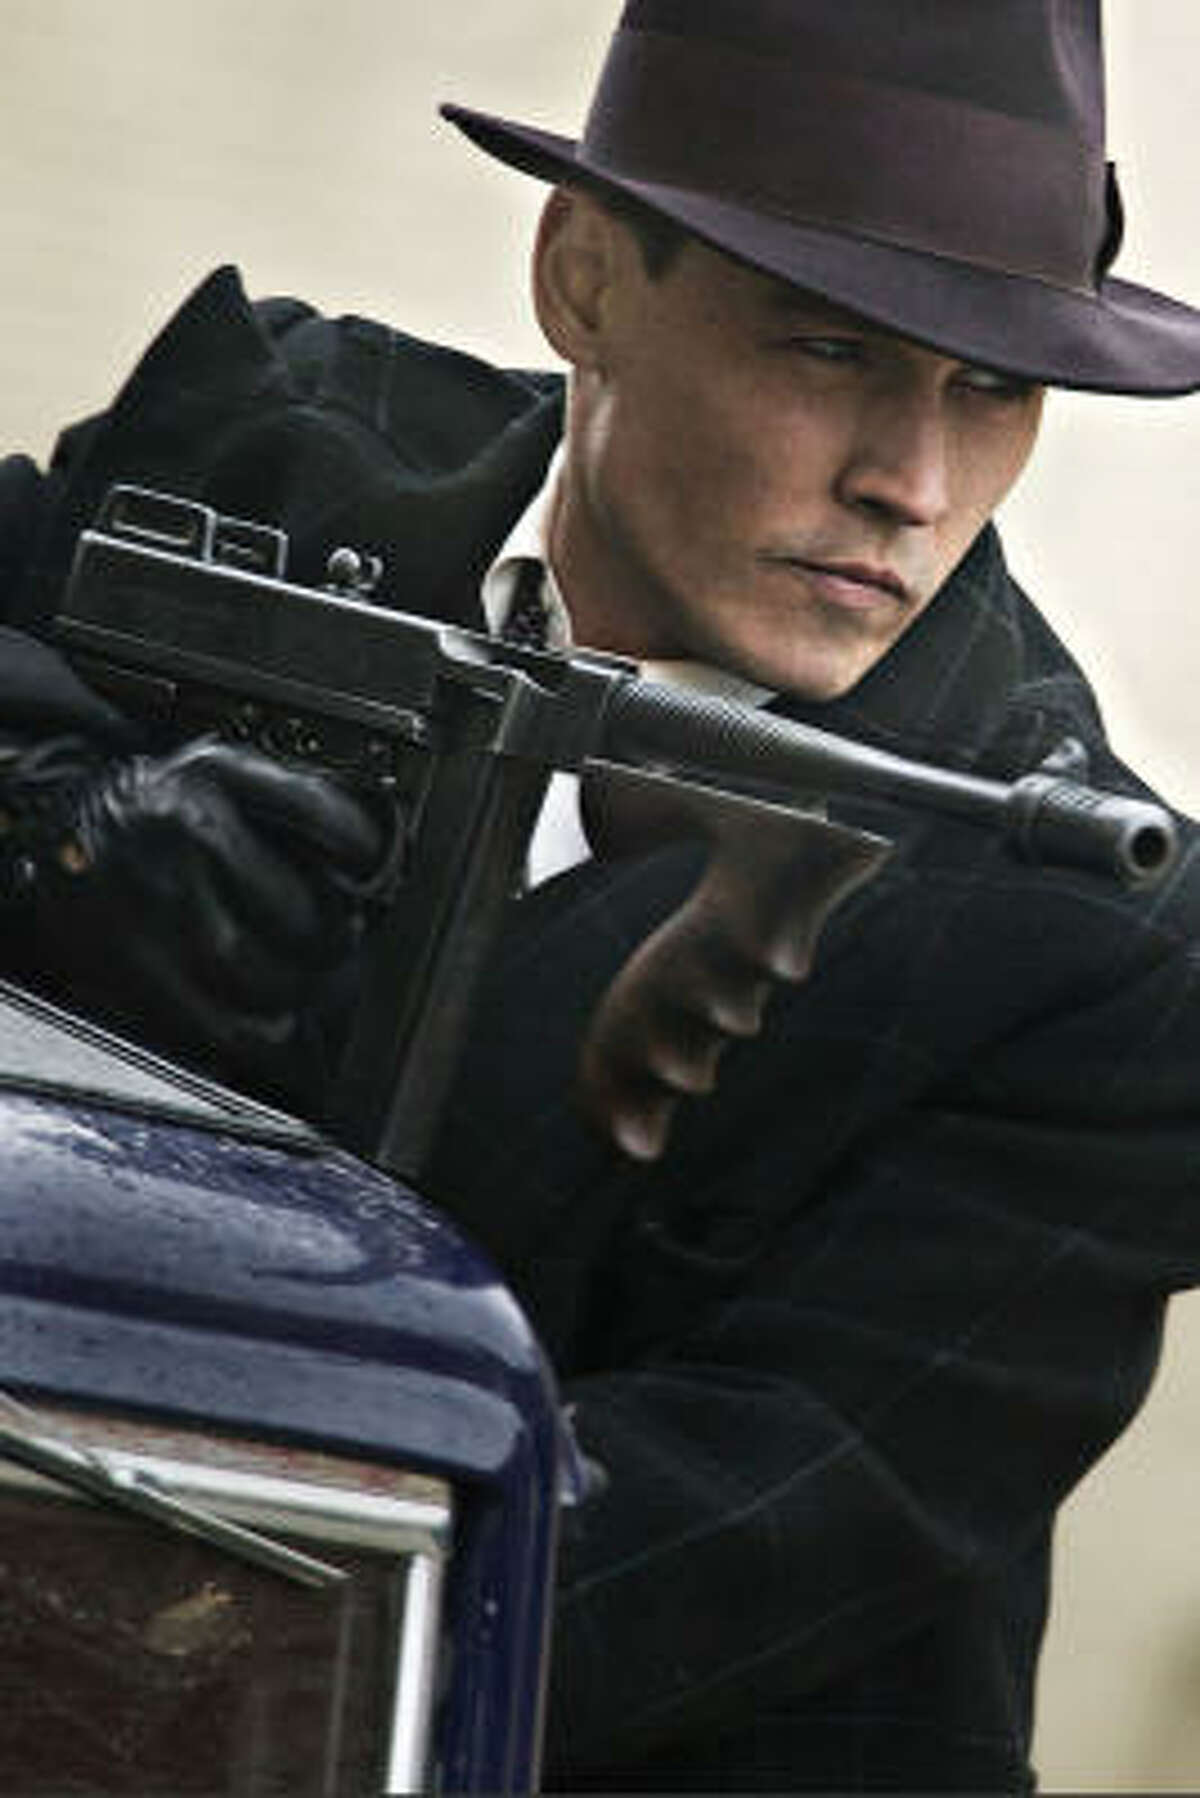 Johnny Depp stars as legendary Depression-era outlaw John Dillinger in the new film by Michael Mann, Public Enemies. To read the review of Public Enemy click here.